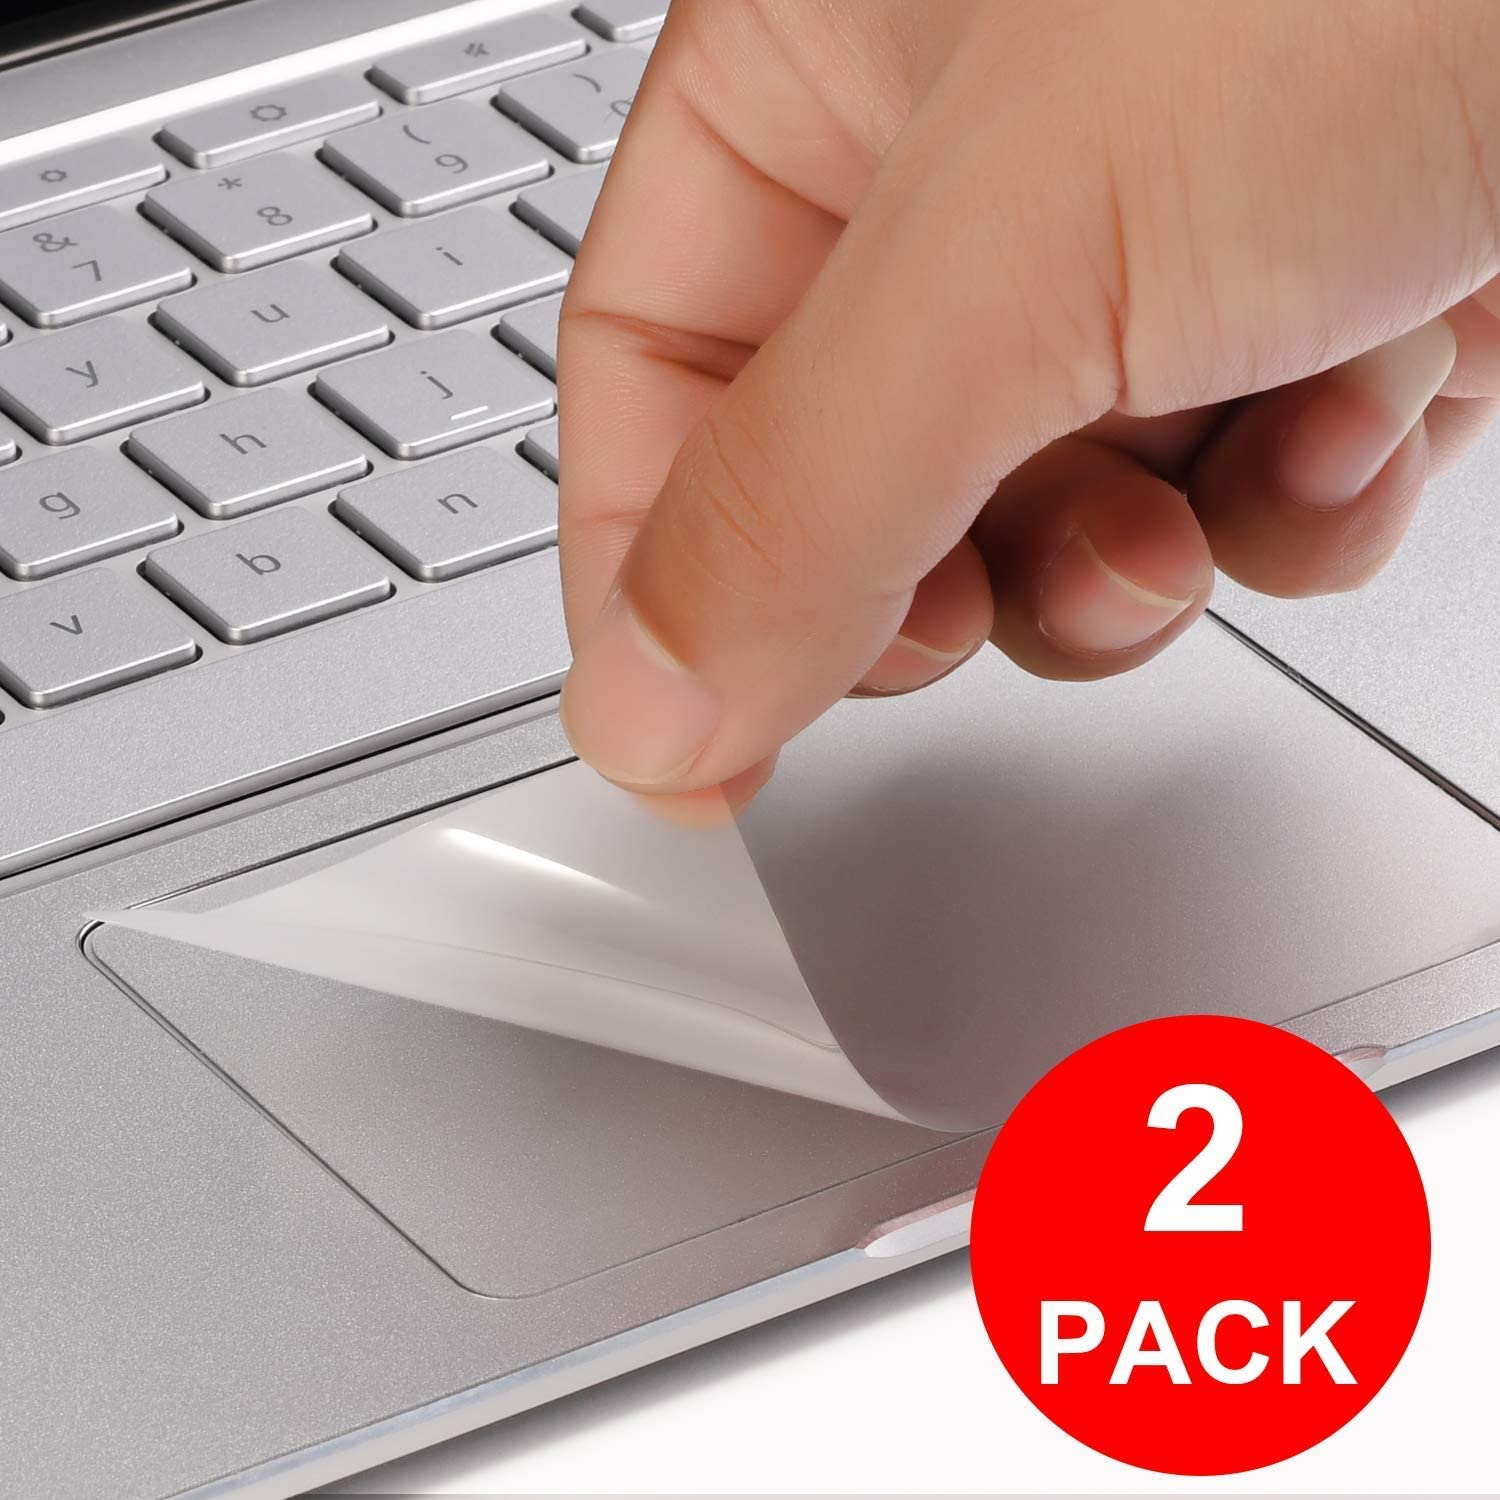 [2 Pack] Lapogy Clear Anti-Scratch Trackpad Protector Touchpad Cover Skin for Google Pixelbook go 13.3 inch 2019,Google Pixelbook go Accessories